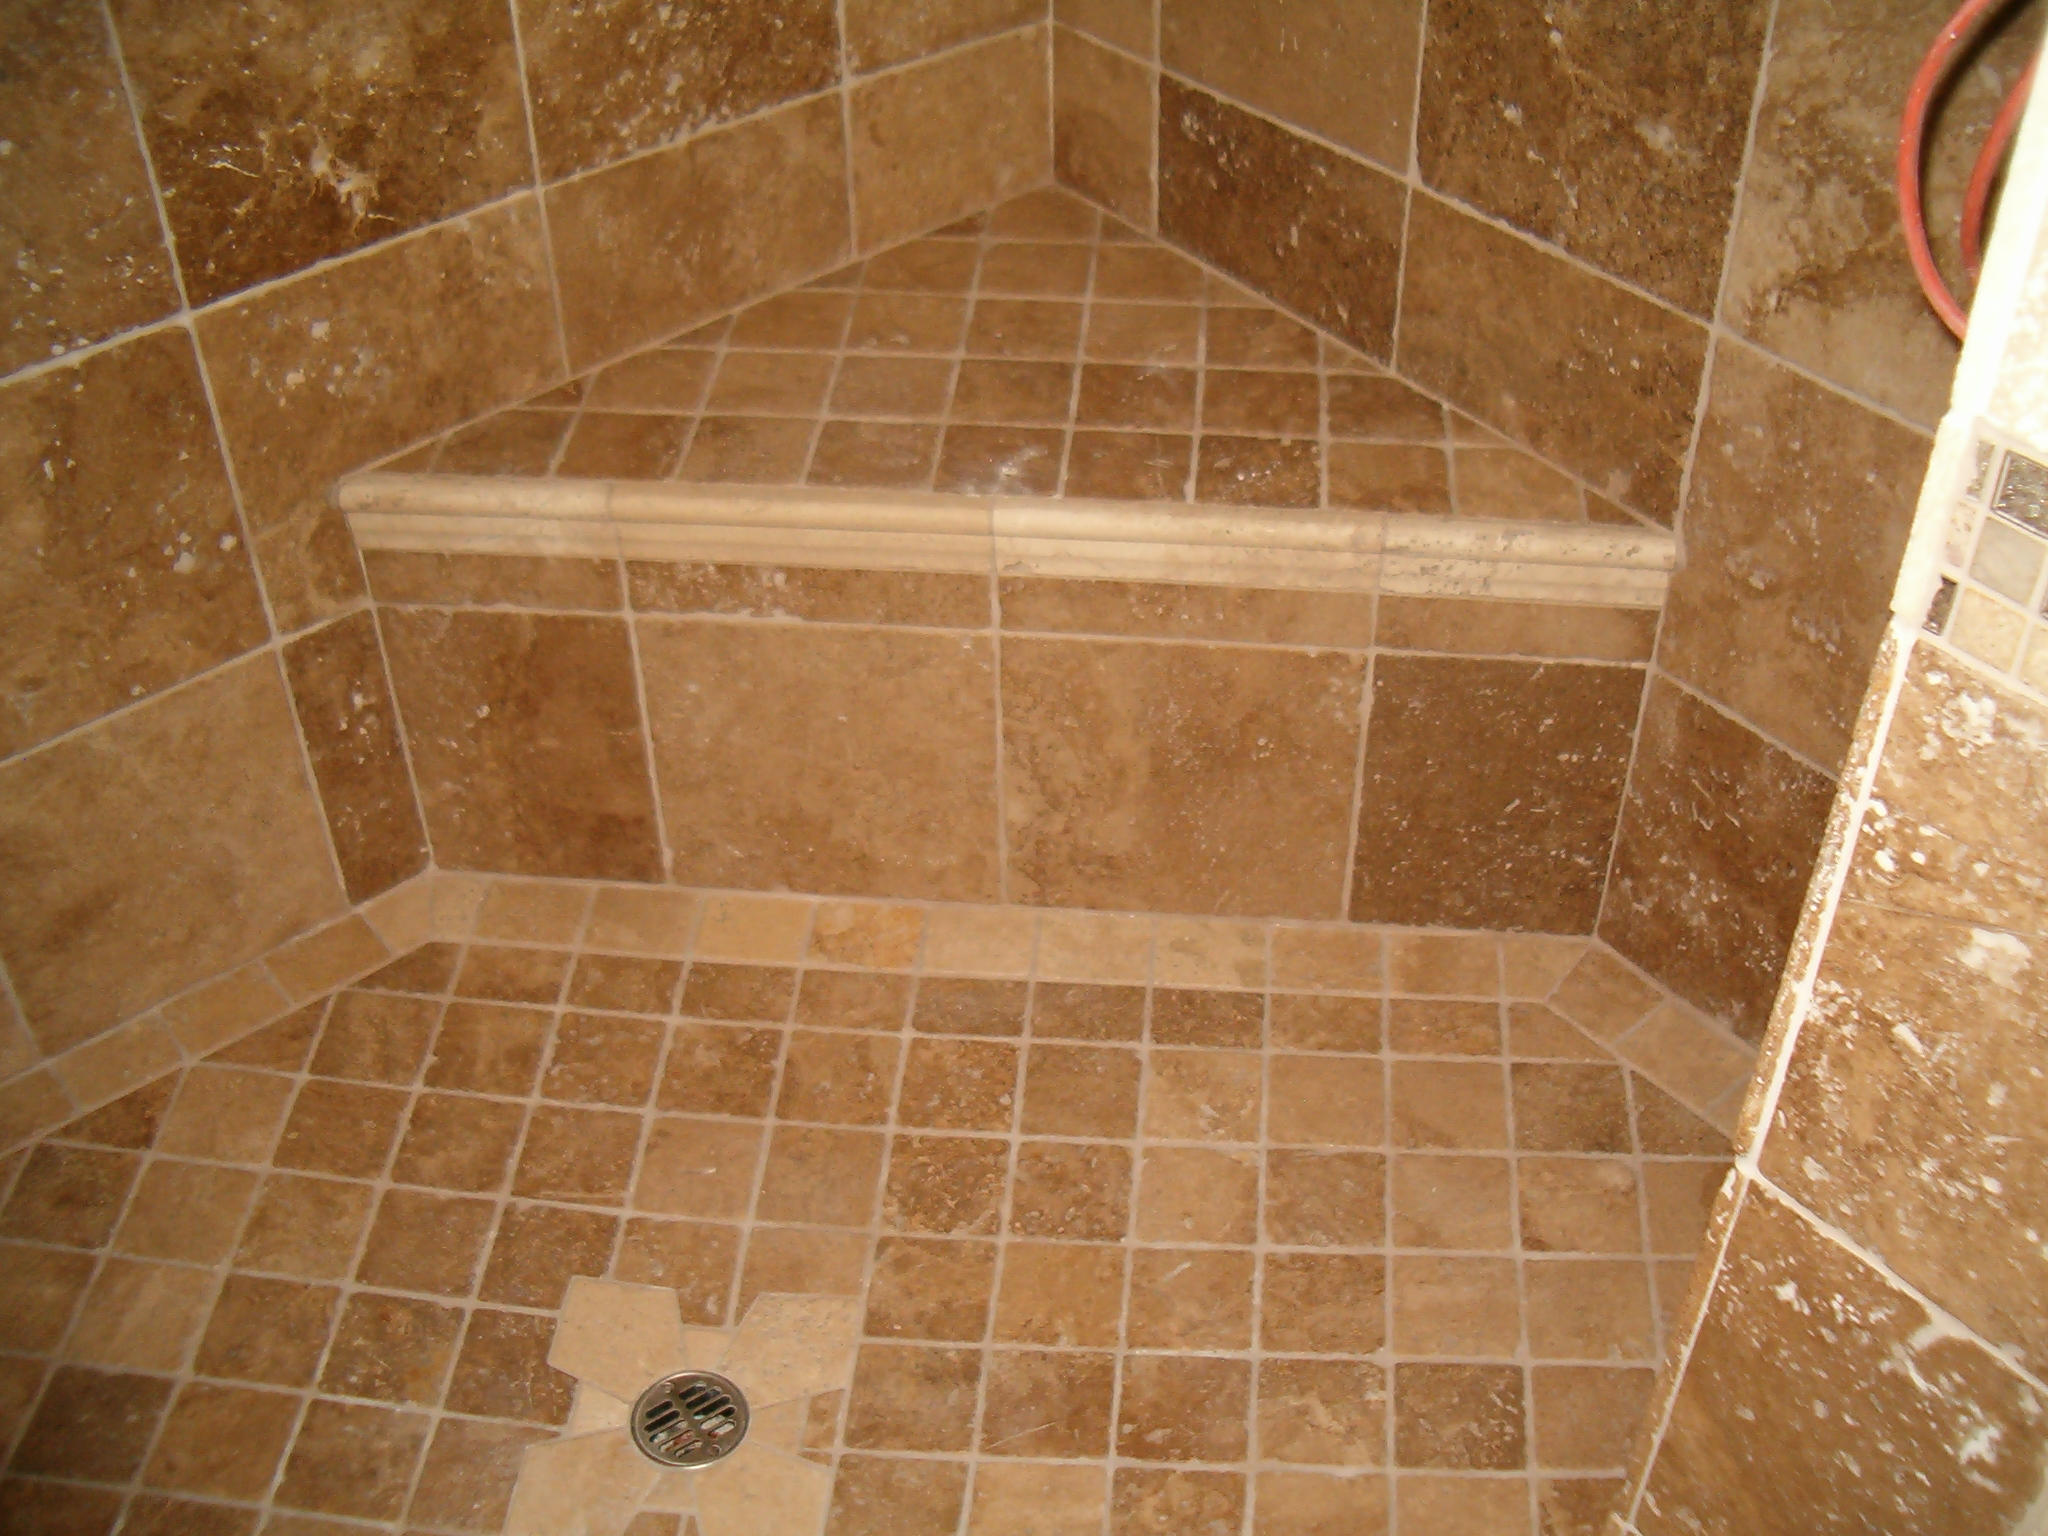 Shower anatomy Shower tile layout